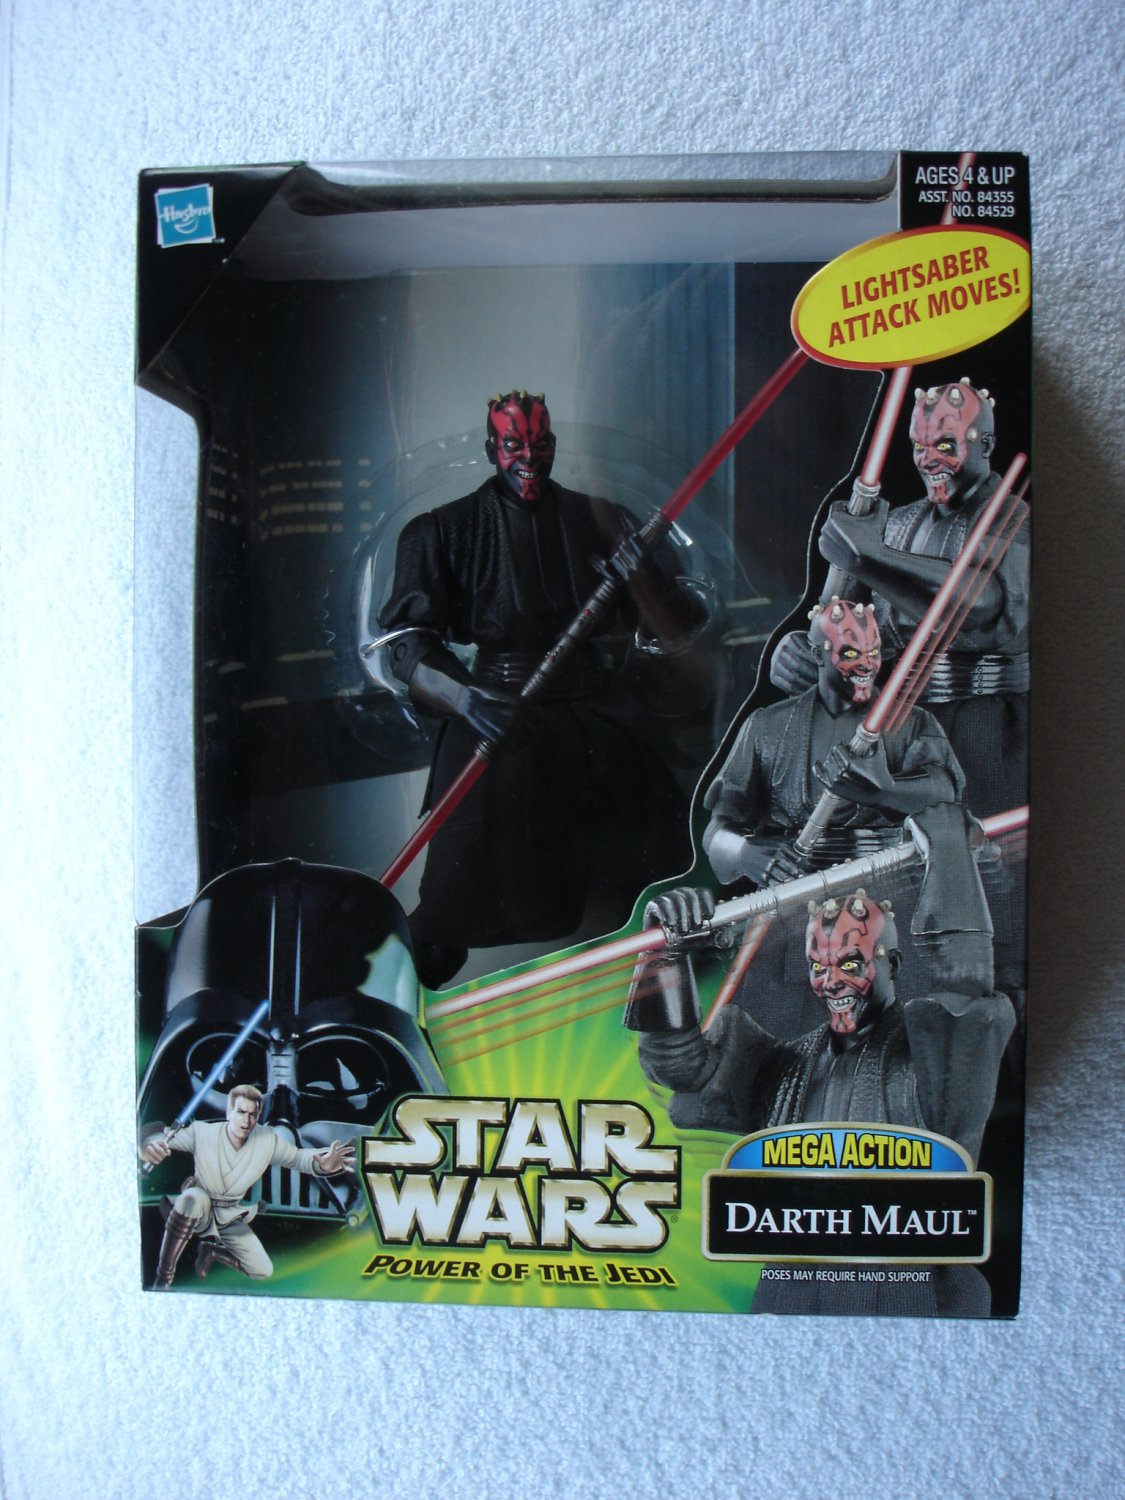 Star Wars POTJ Deluxe Mega Action Darth Maul